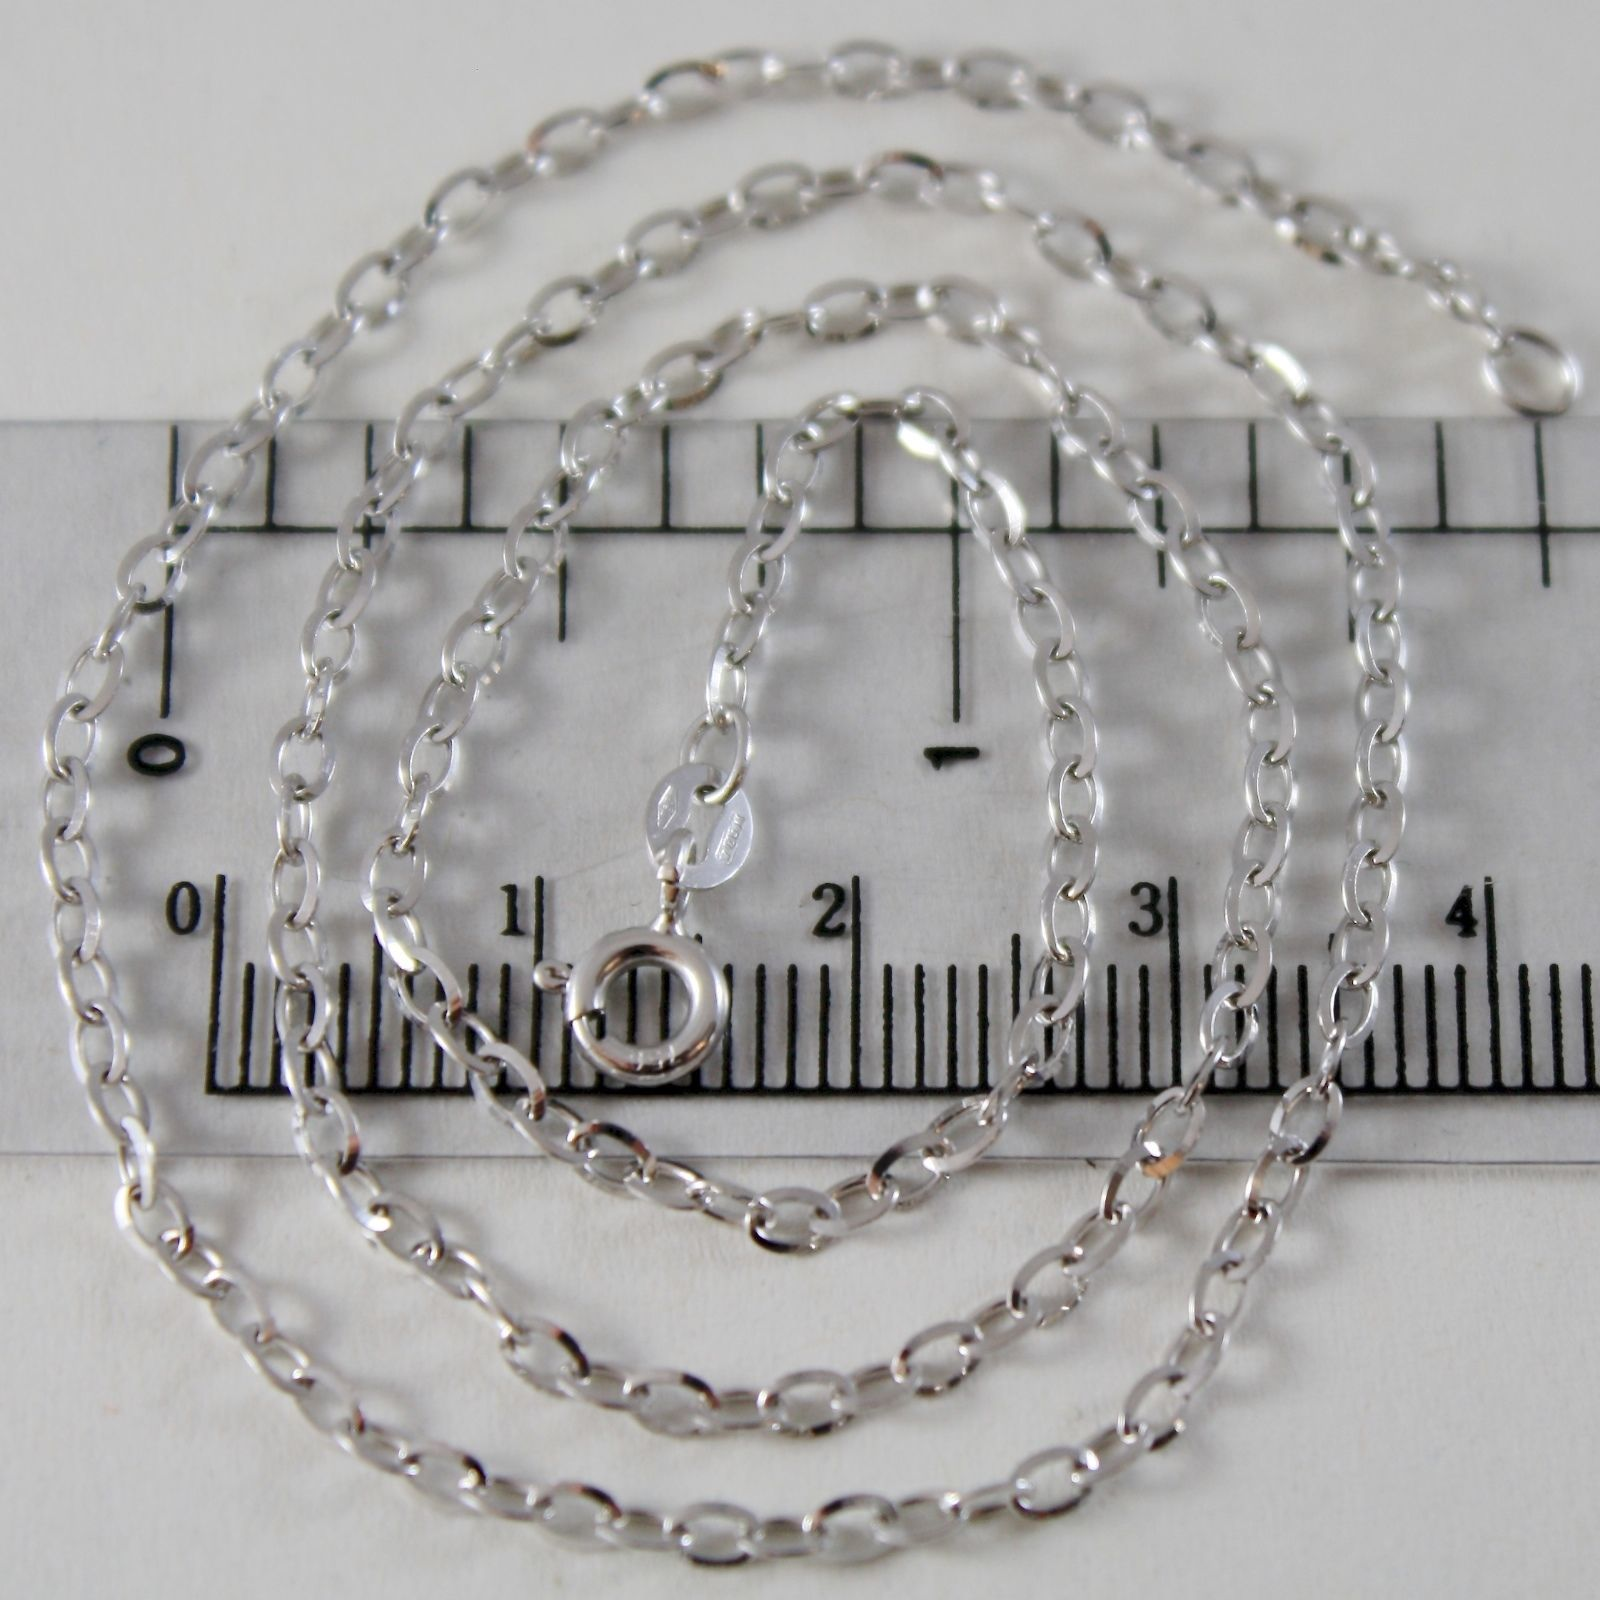 18K WHITE GOLD CHAIN MINI 2 MM ROLO OVAL MIRROR LINK 15.75 INCHES MADE IN ITALY